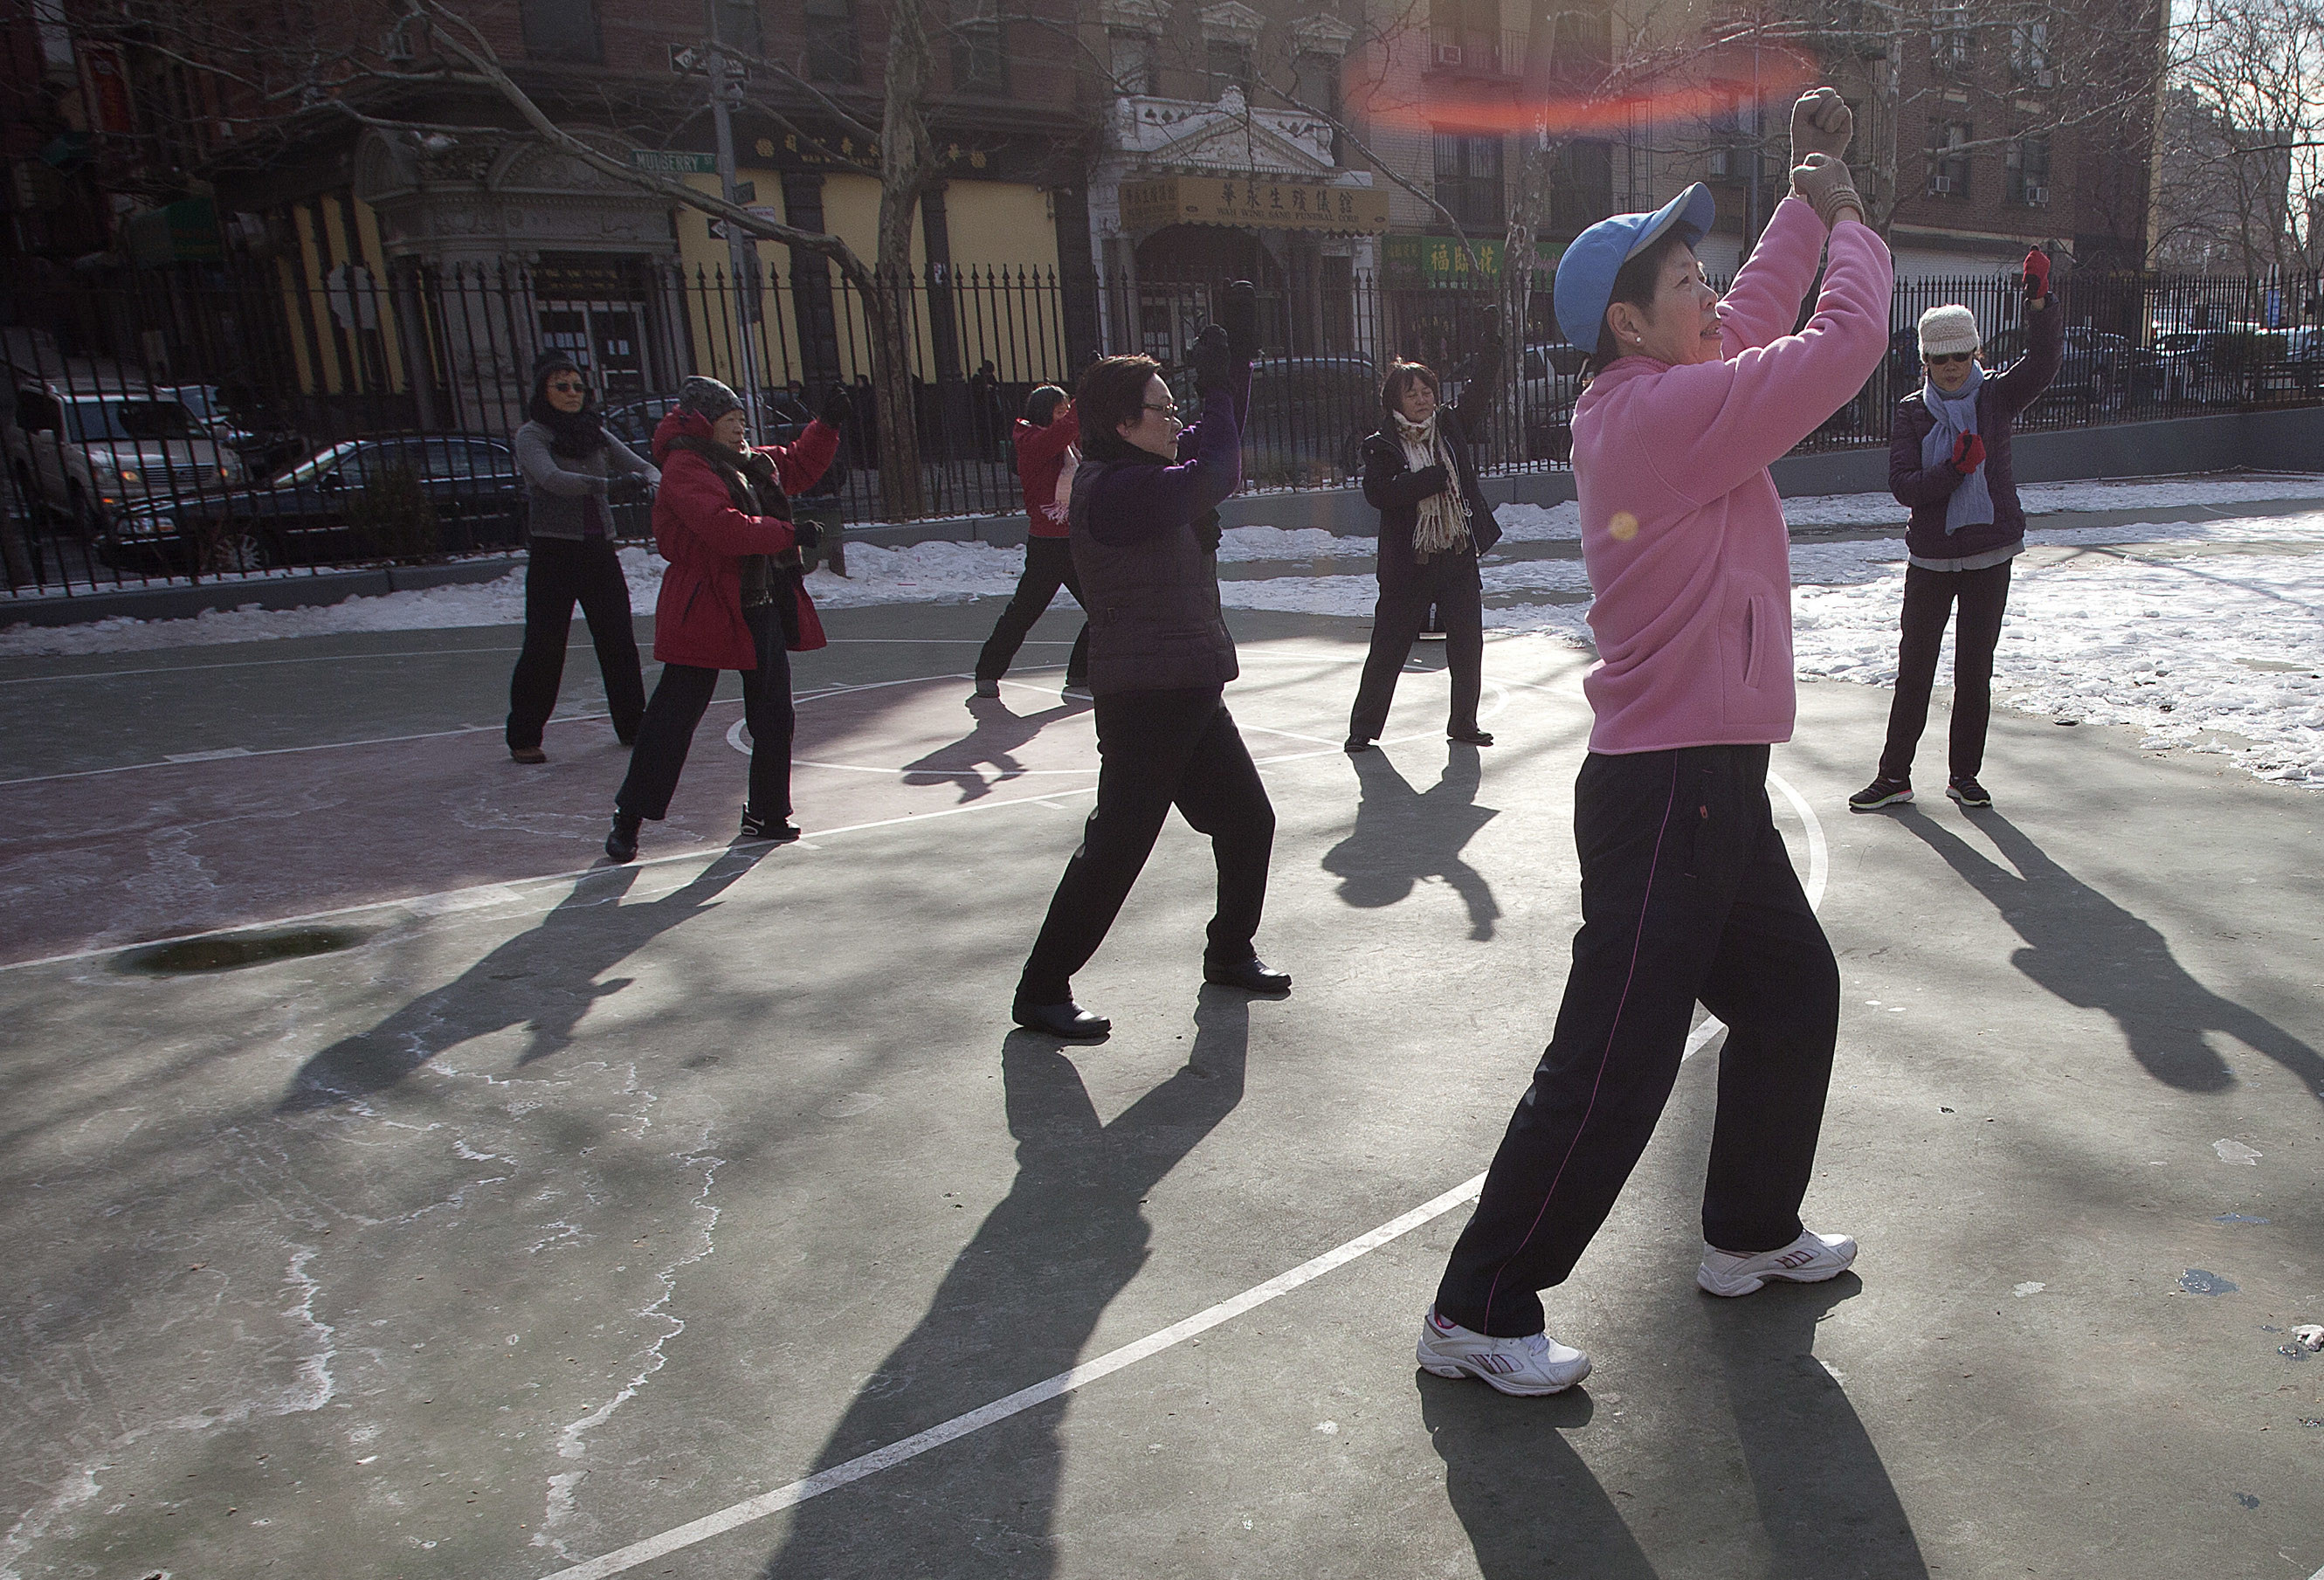 Women exercise in a park in Chinatown in the Manhattan Borough of New York March 5, 2014. REUTERS/Carlo Allegri (UNITED STATES - Tags: SOCIETY) - RTR3G2MZ